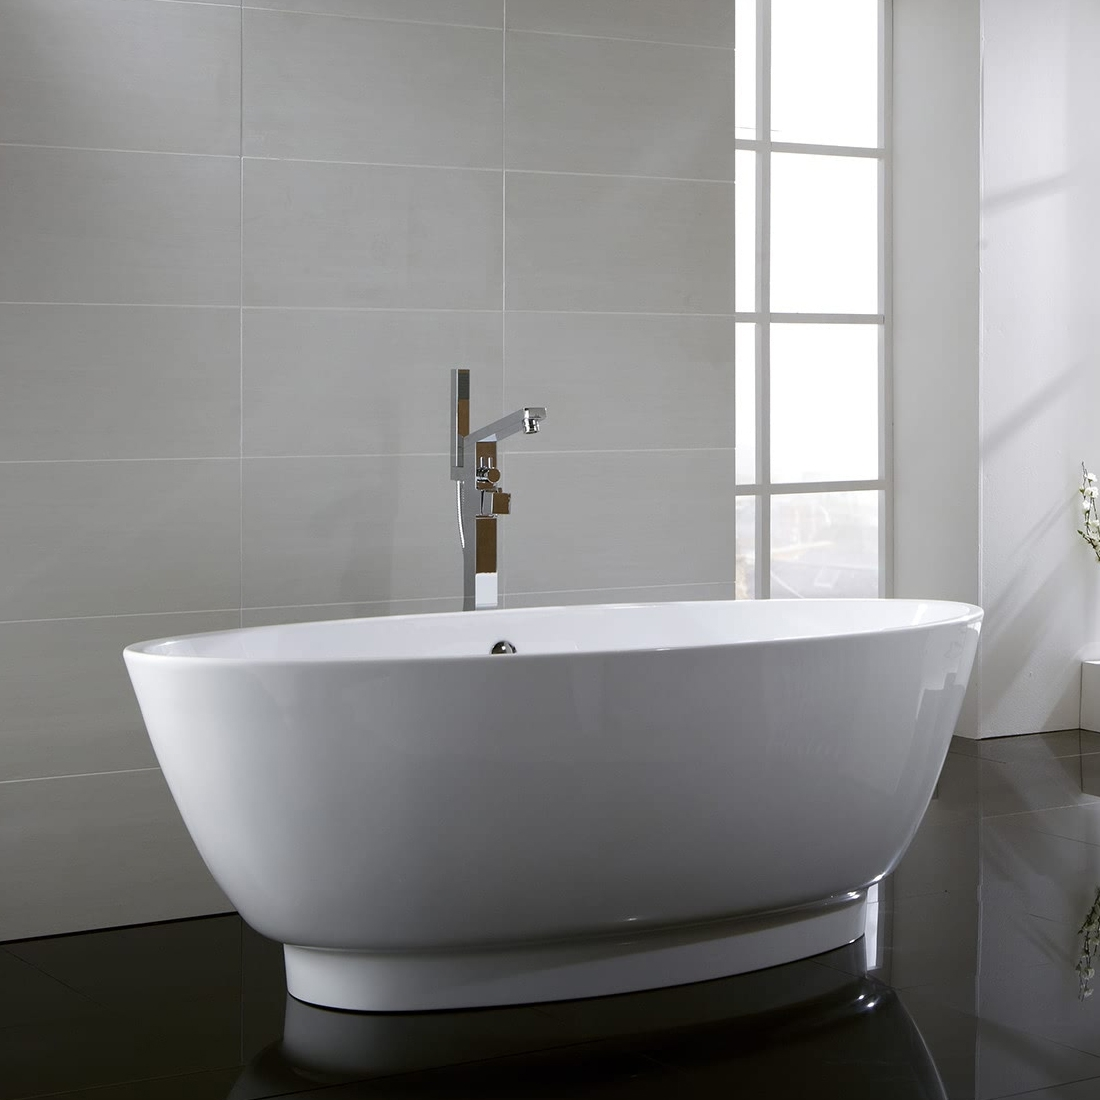 Verona Pure Freestanding Double Ended Bath 1785mm x 775mm - White